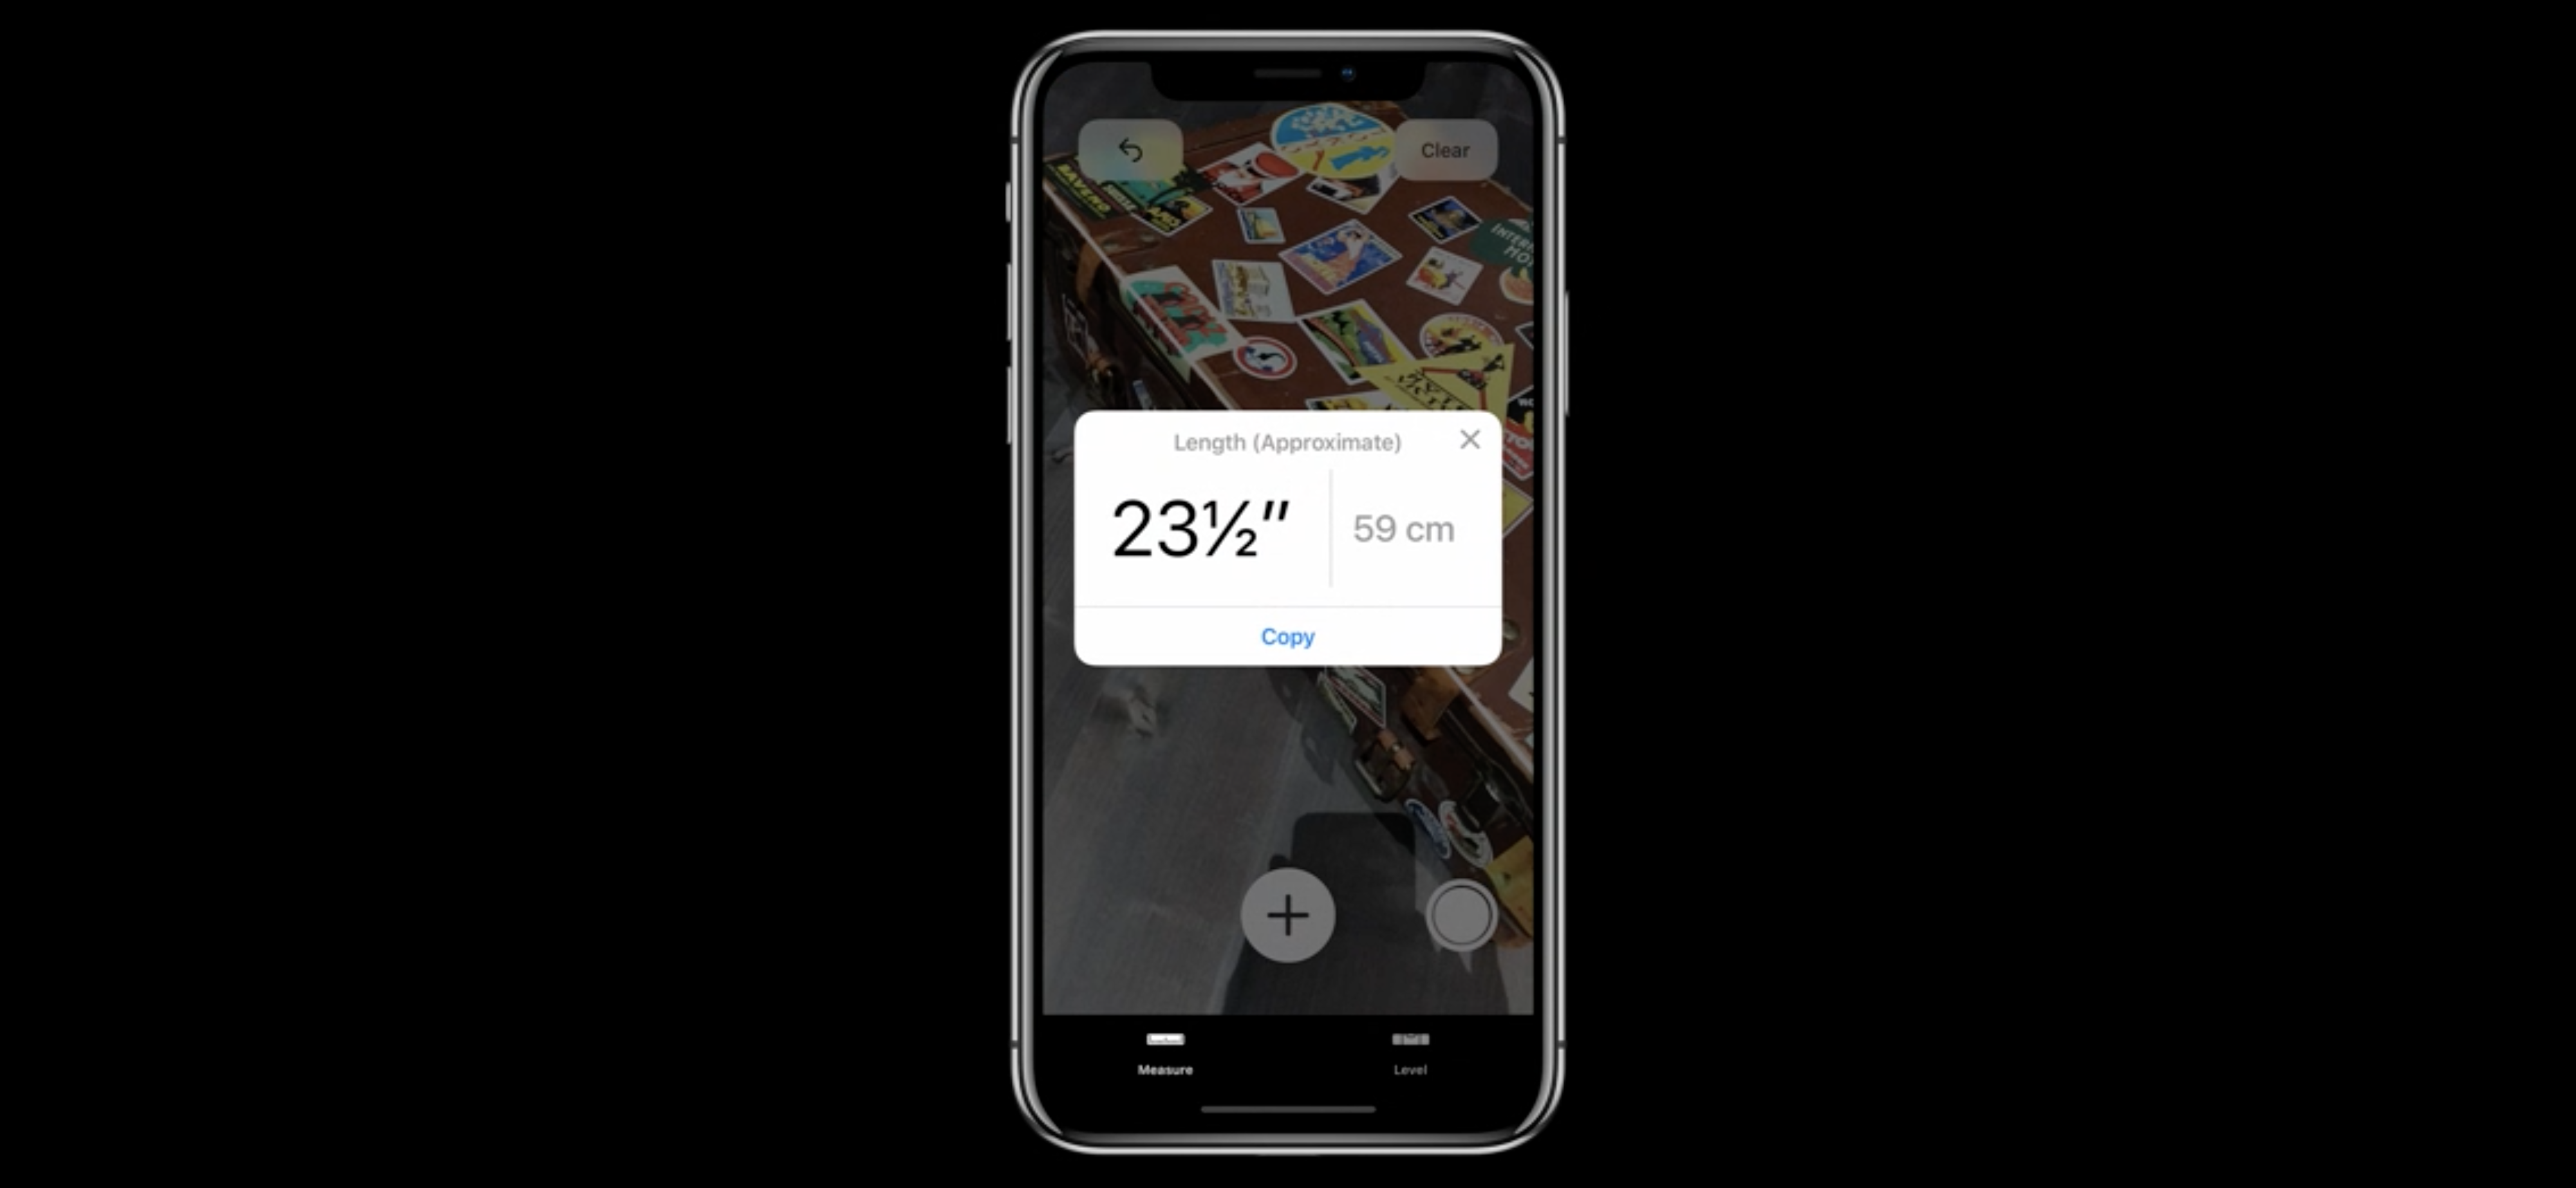 Apple's New Measure App Uses AR to Measure Anything with